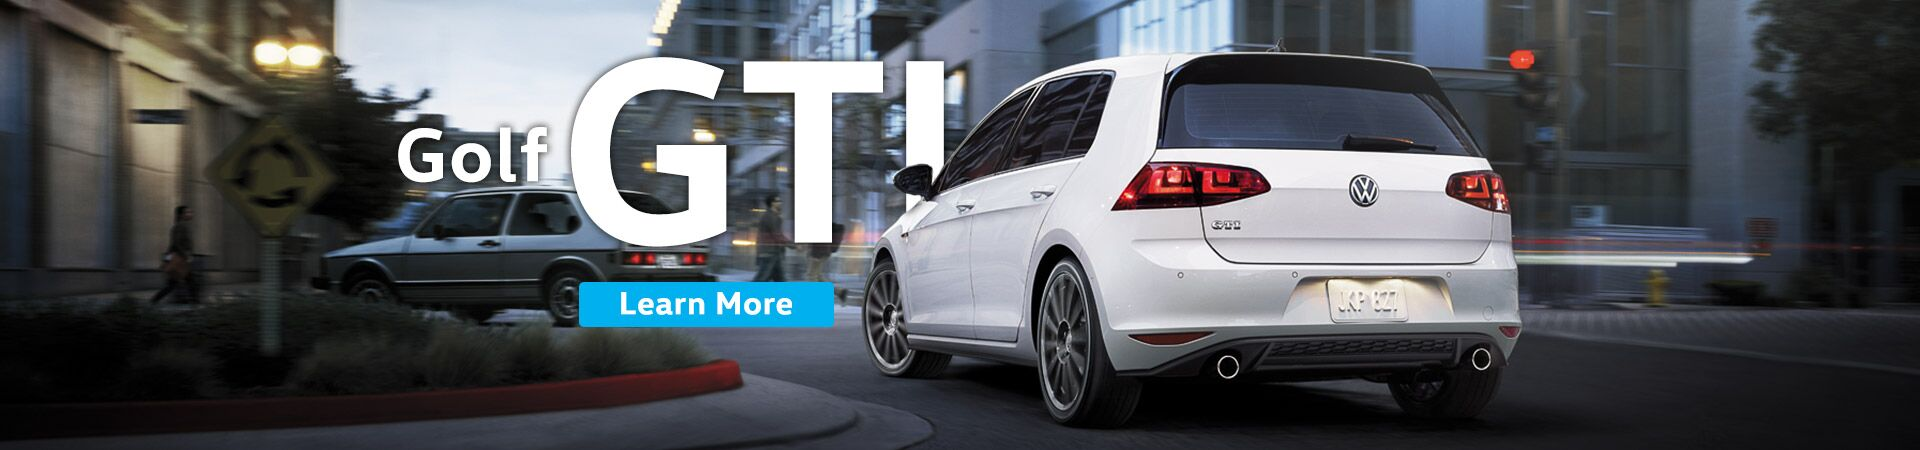 VW Golf GTI at Compass Volkswagen